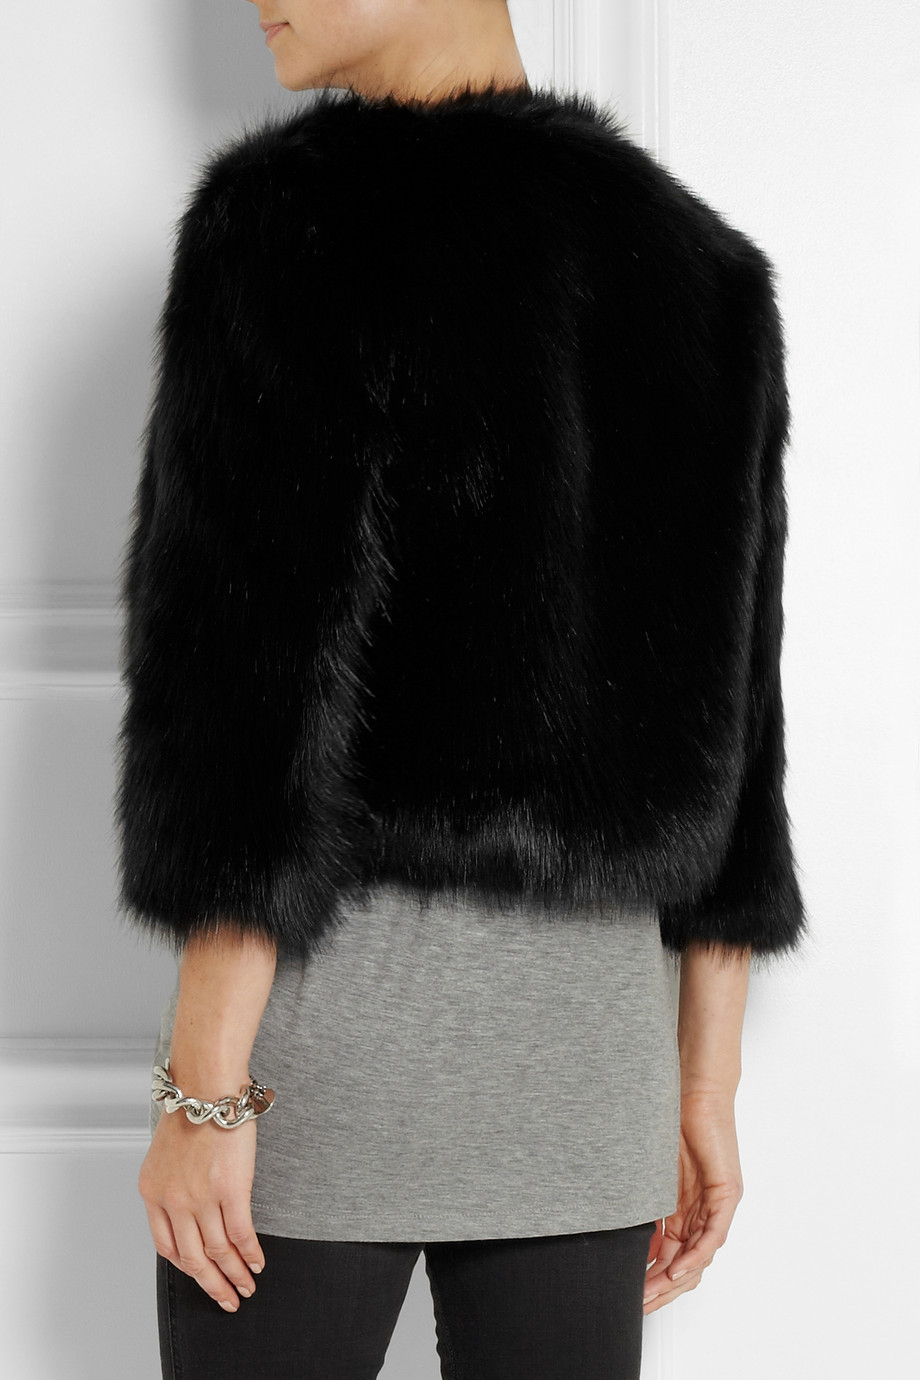 Feb 11,  · Luckily, though, faux fur exists for those who want the look of a fur jacket without the overwhelming sense of guilt (and empty bank account). And according to fashion shows and trend forecasts, fur is supposed to be big through